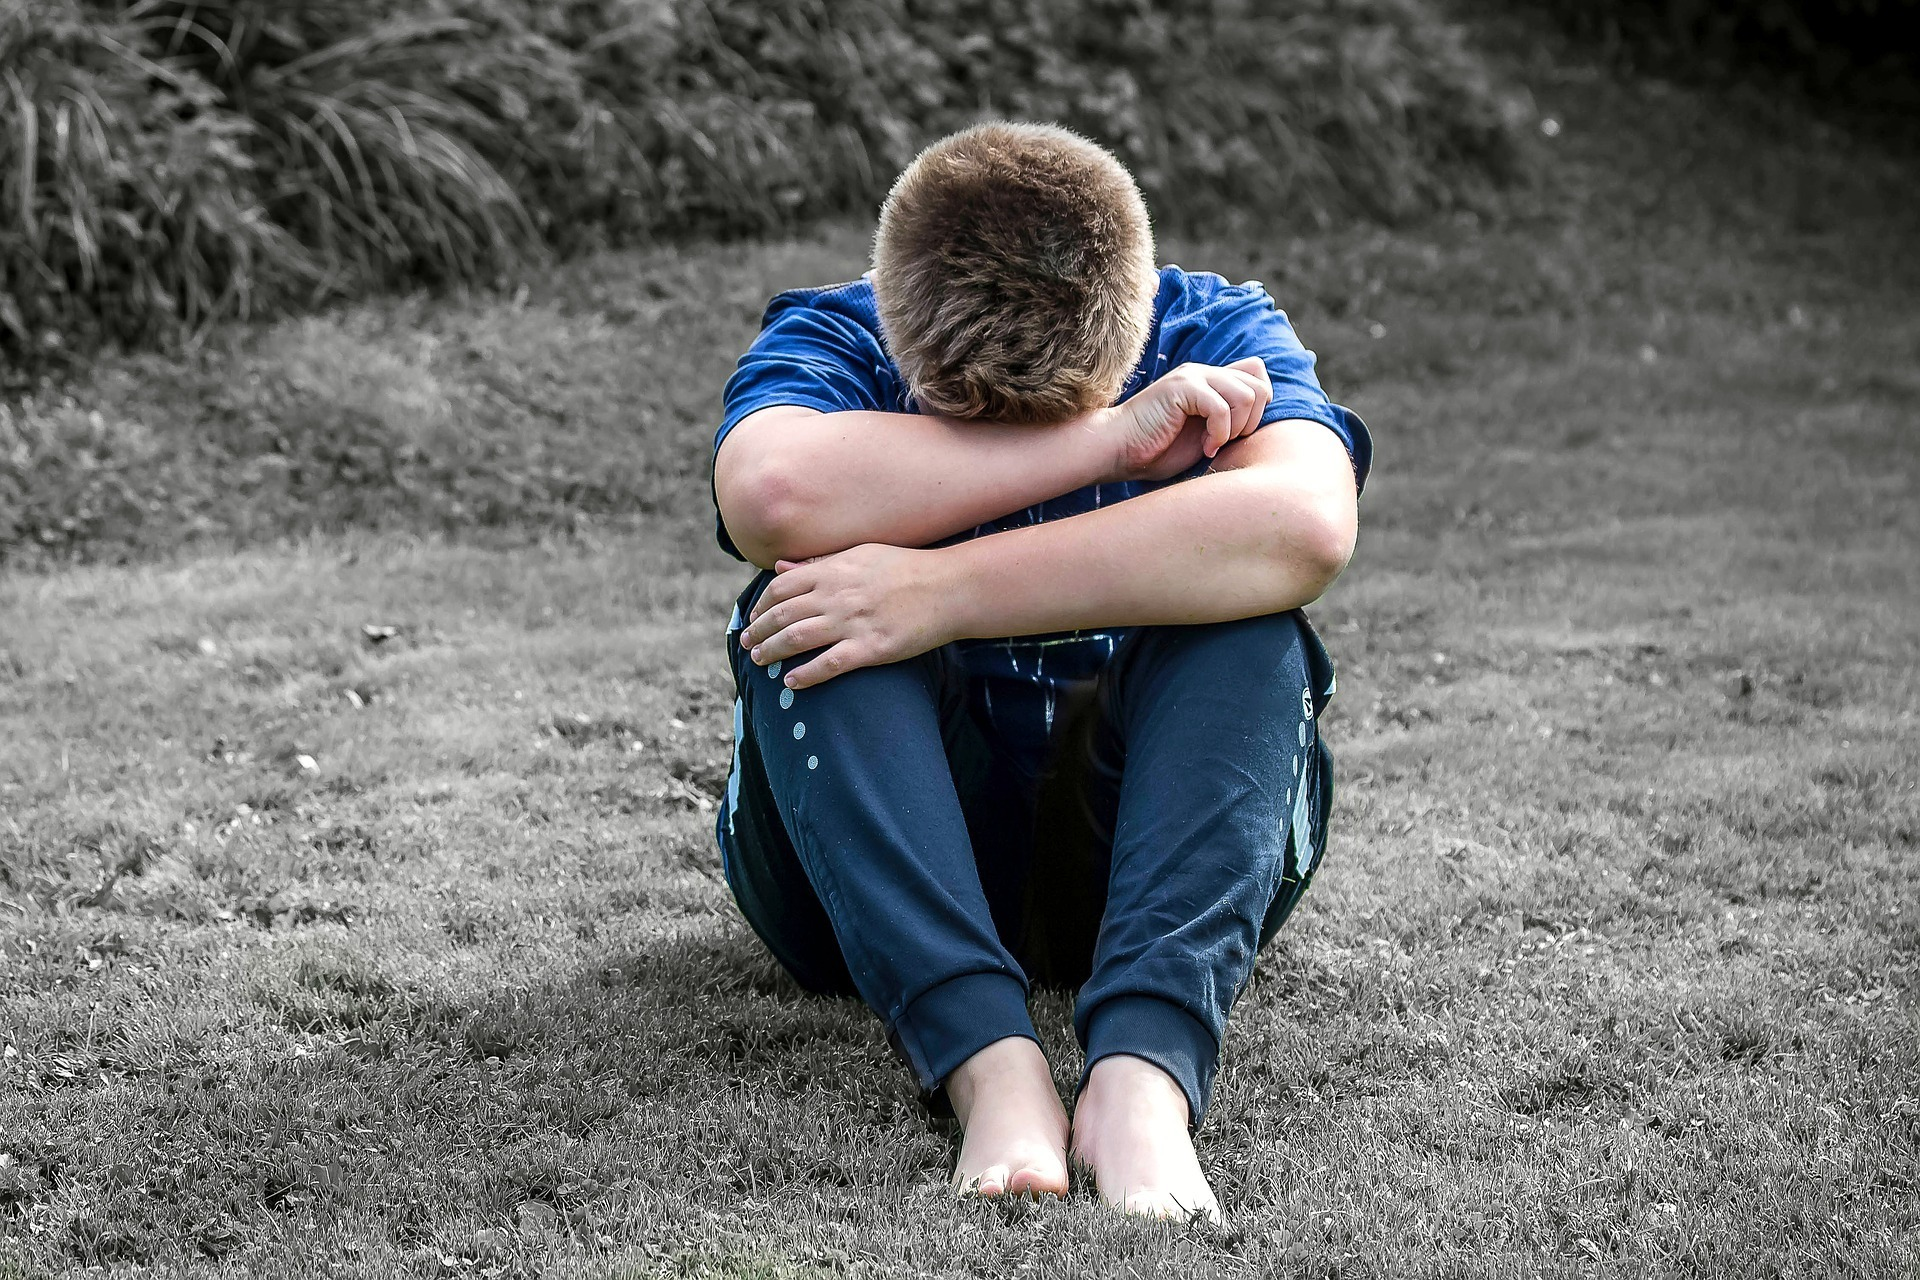 Stock photo of abused boy (free to use by all partners)